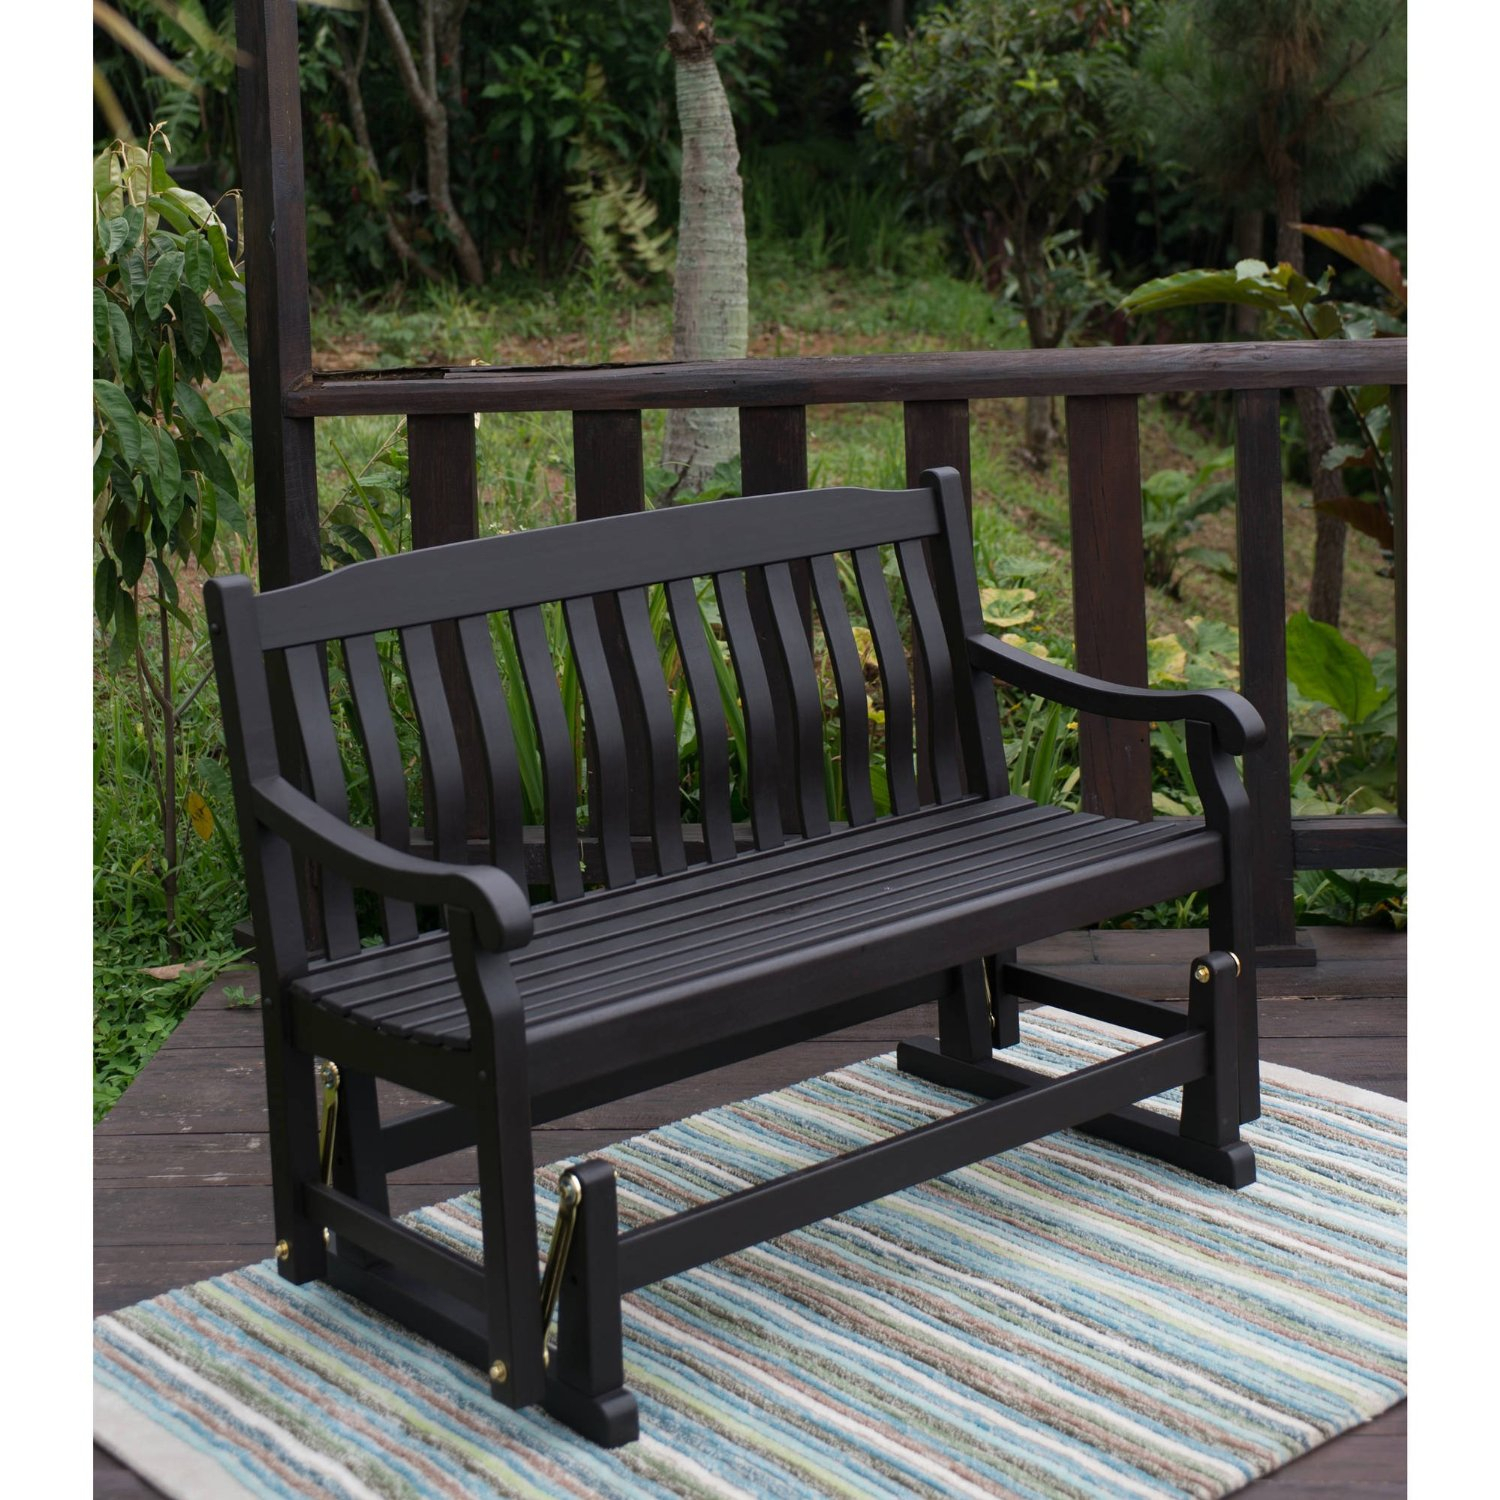 Cheap Patio Furniture Glider Bench, Find Patio Furniture For Black Steel Patio Swing Glider Benches Powder Coated (Image 5 of 25)